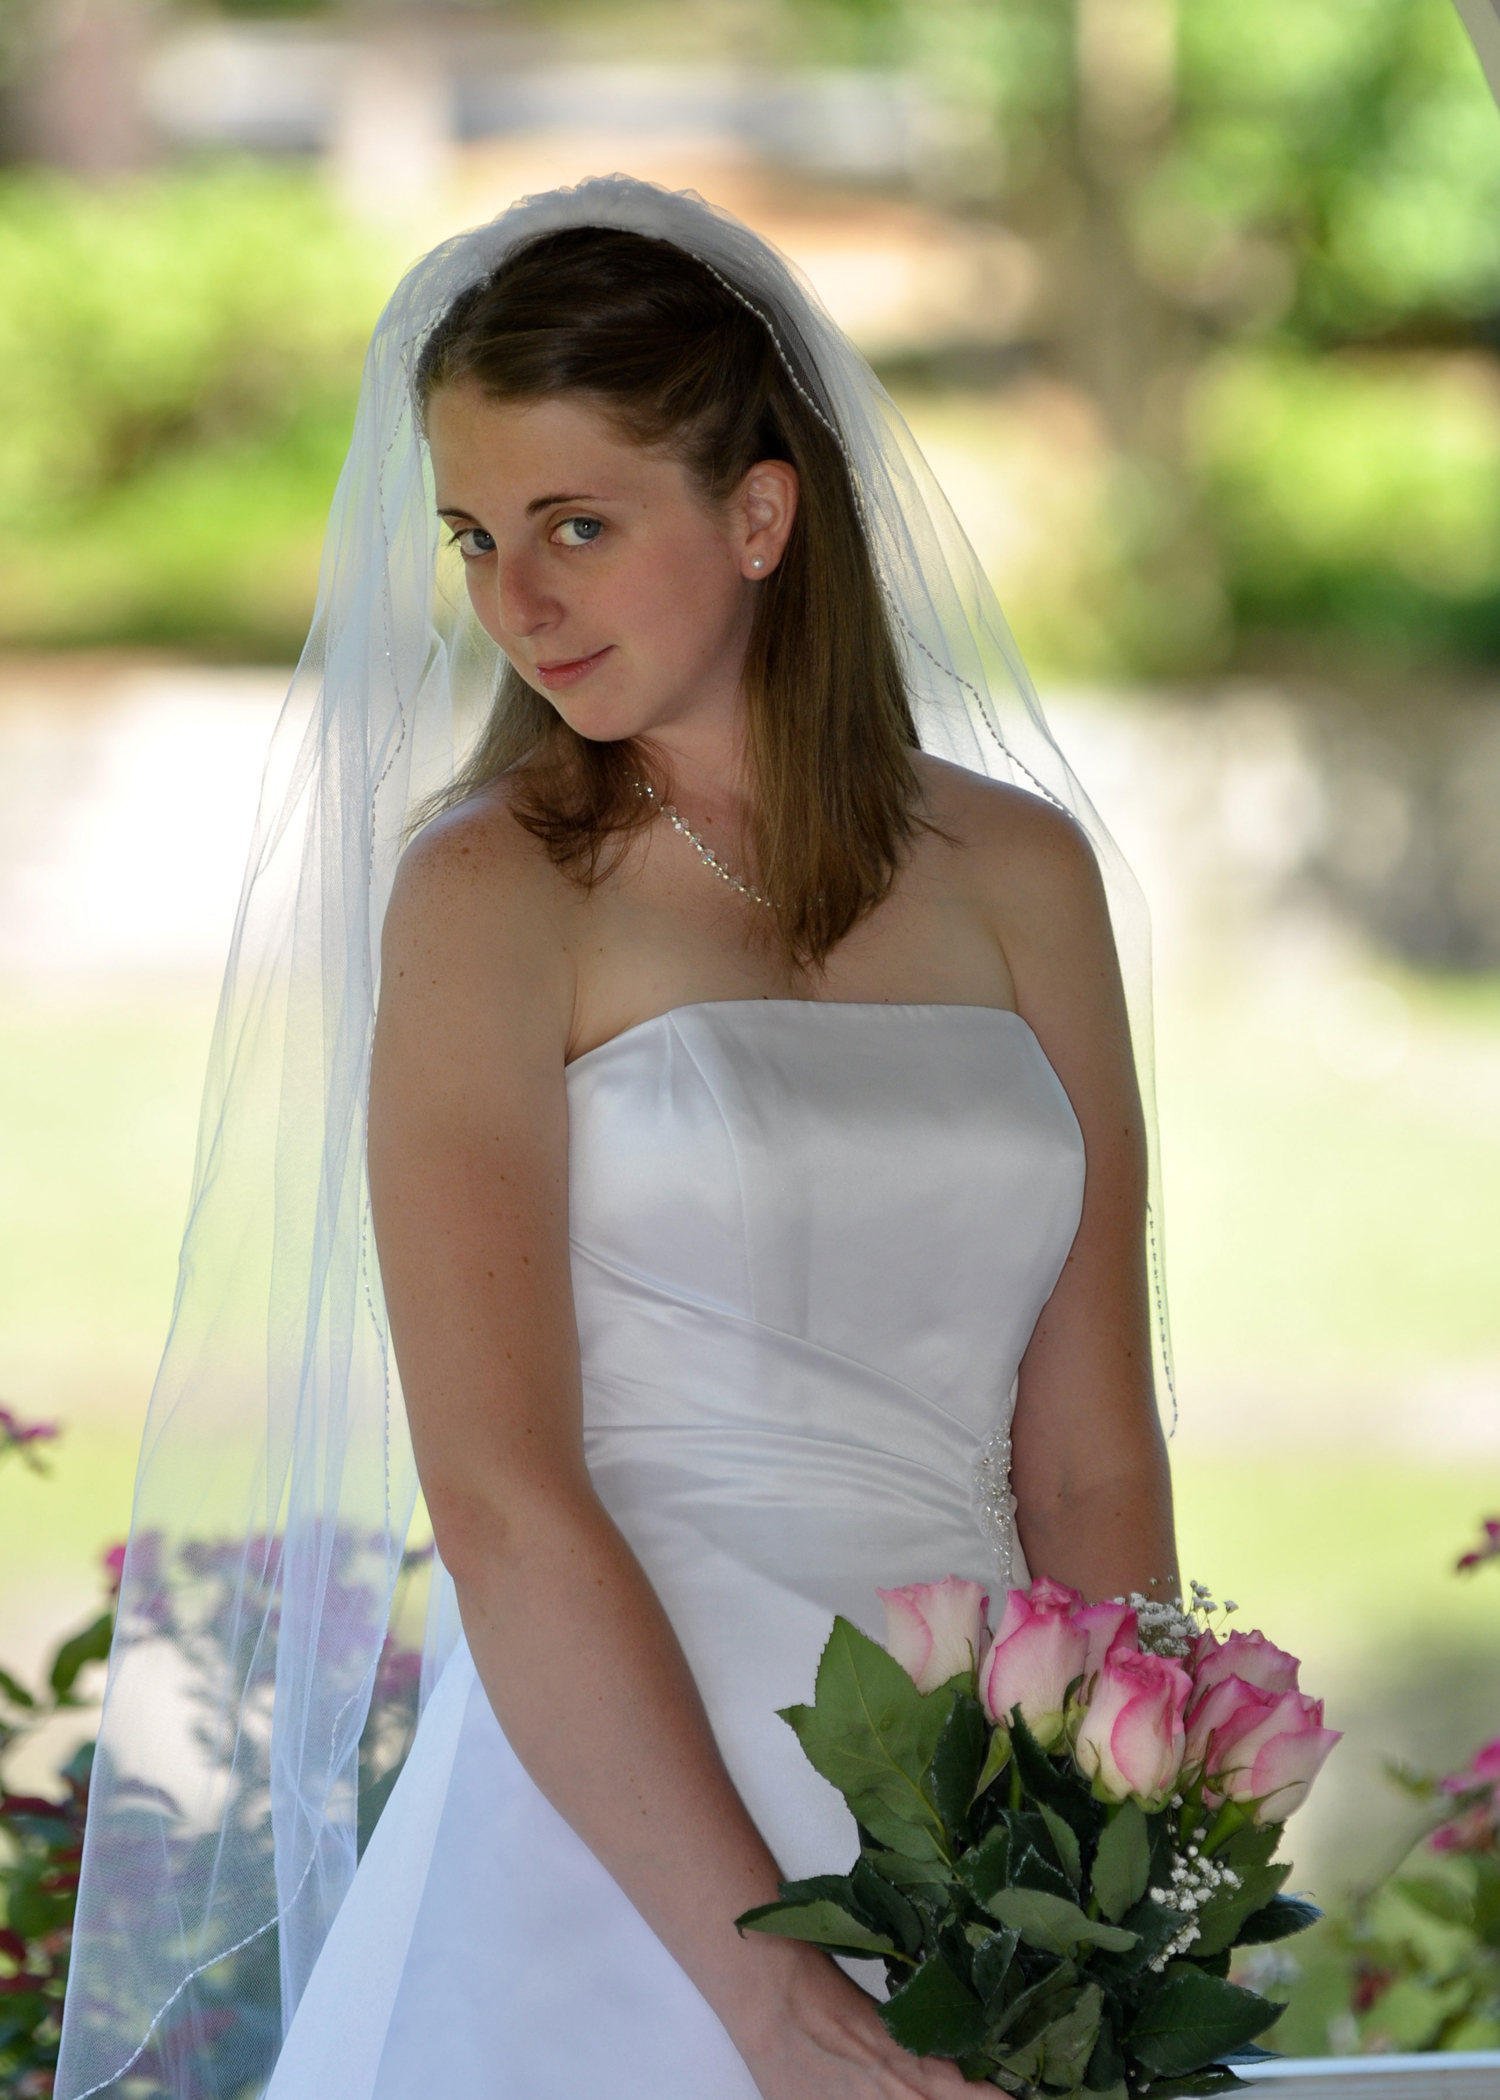 Bridal portrait at Hugh McRae Park in Wilmington, NC.